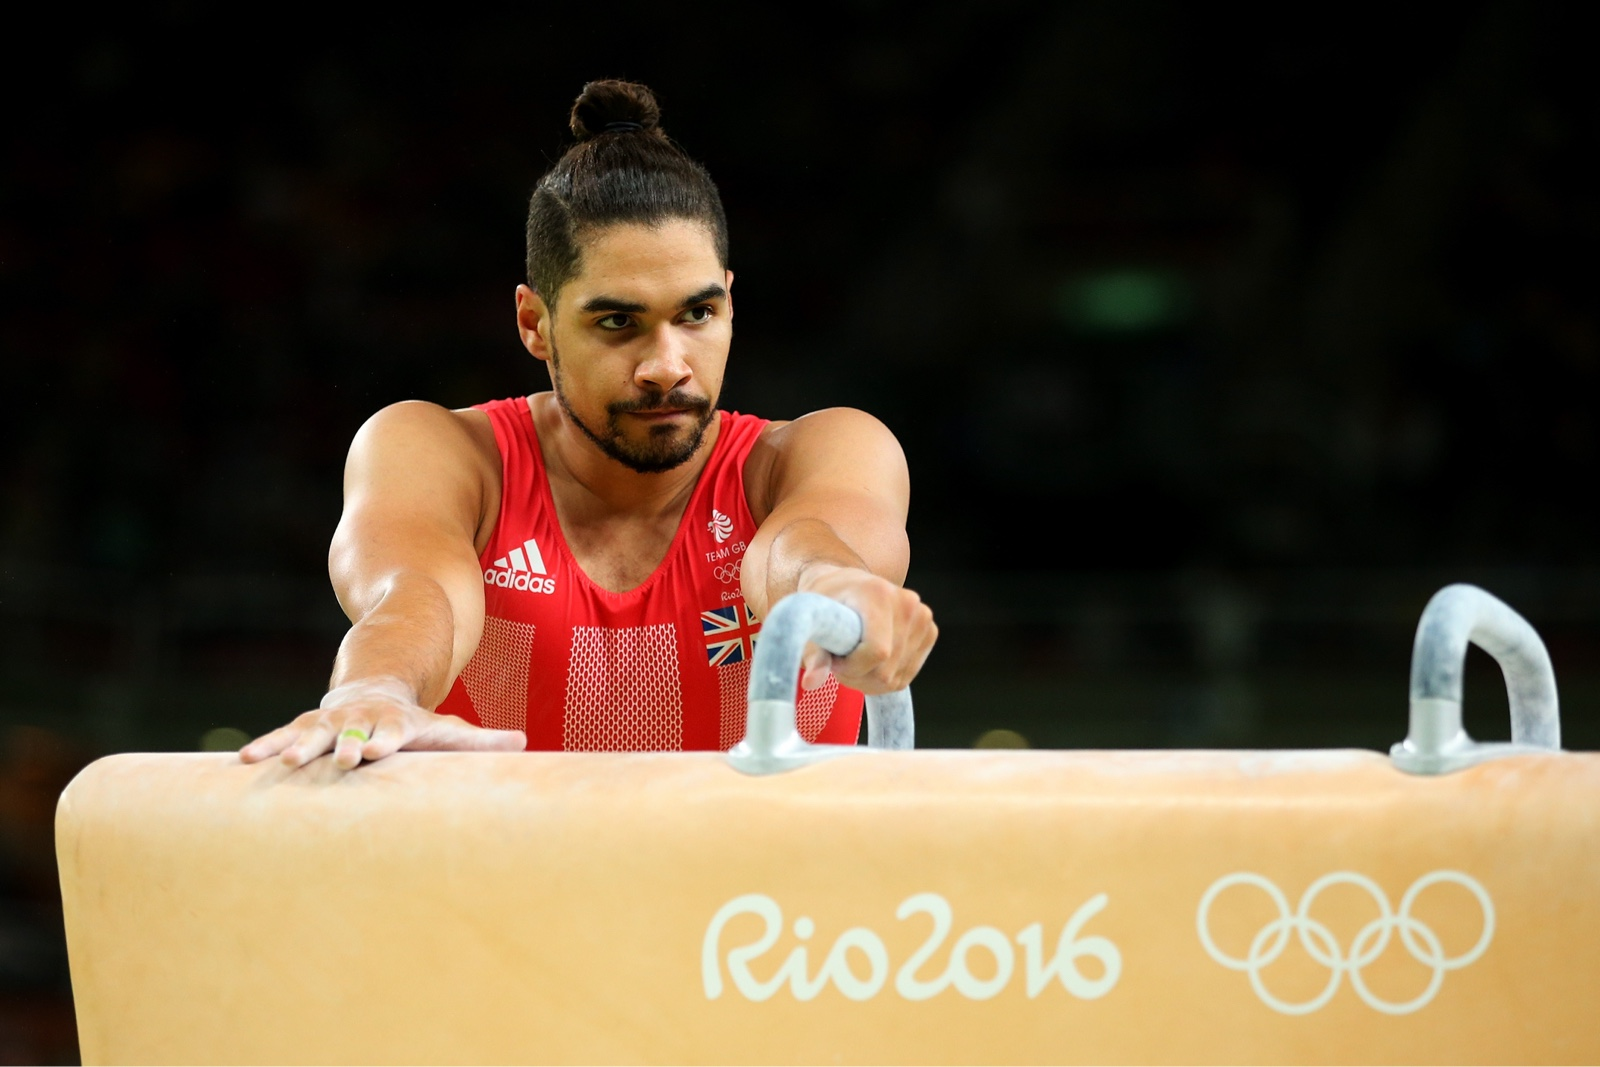 Louis Smith going for Pommel glory at the Rio Olympics